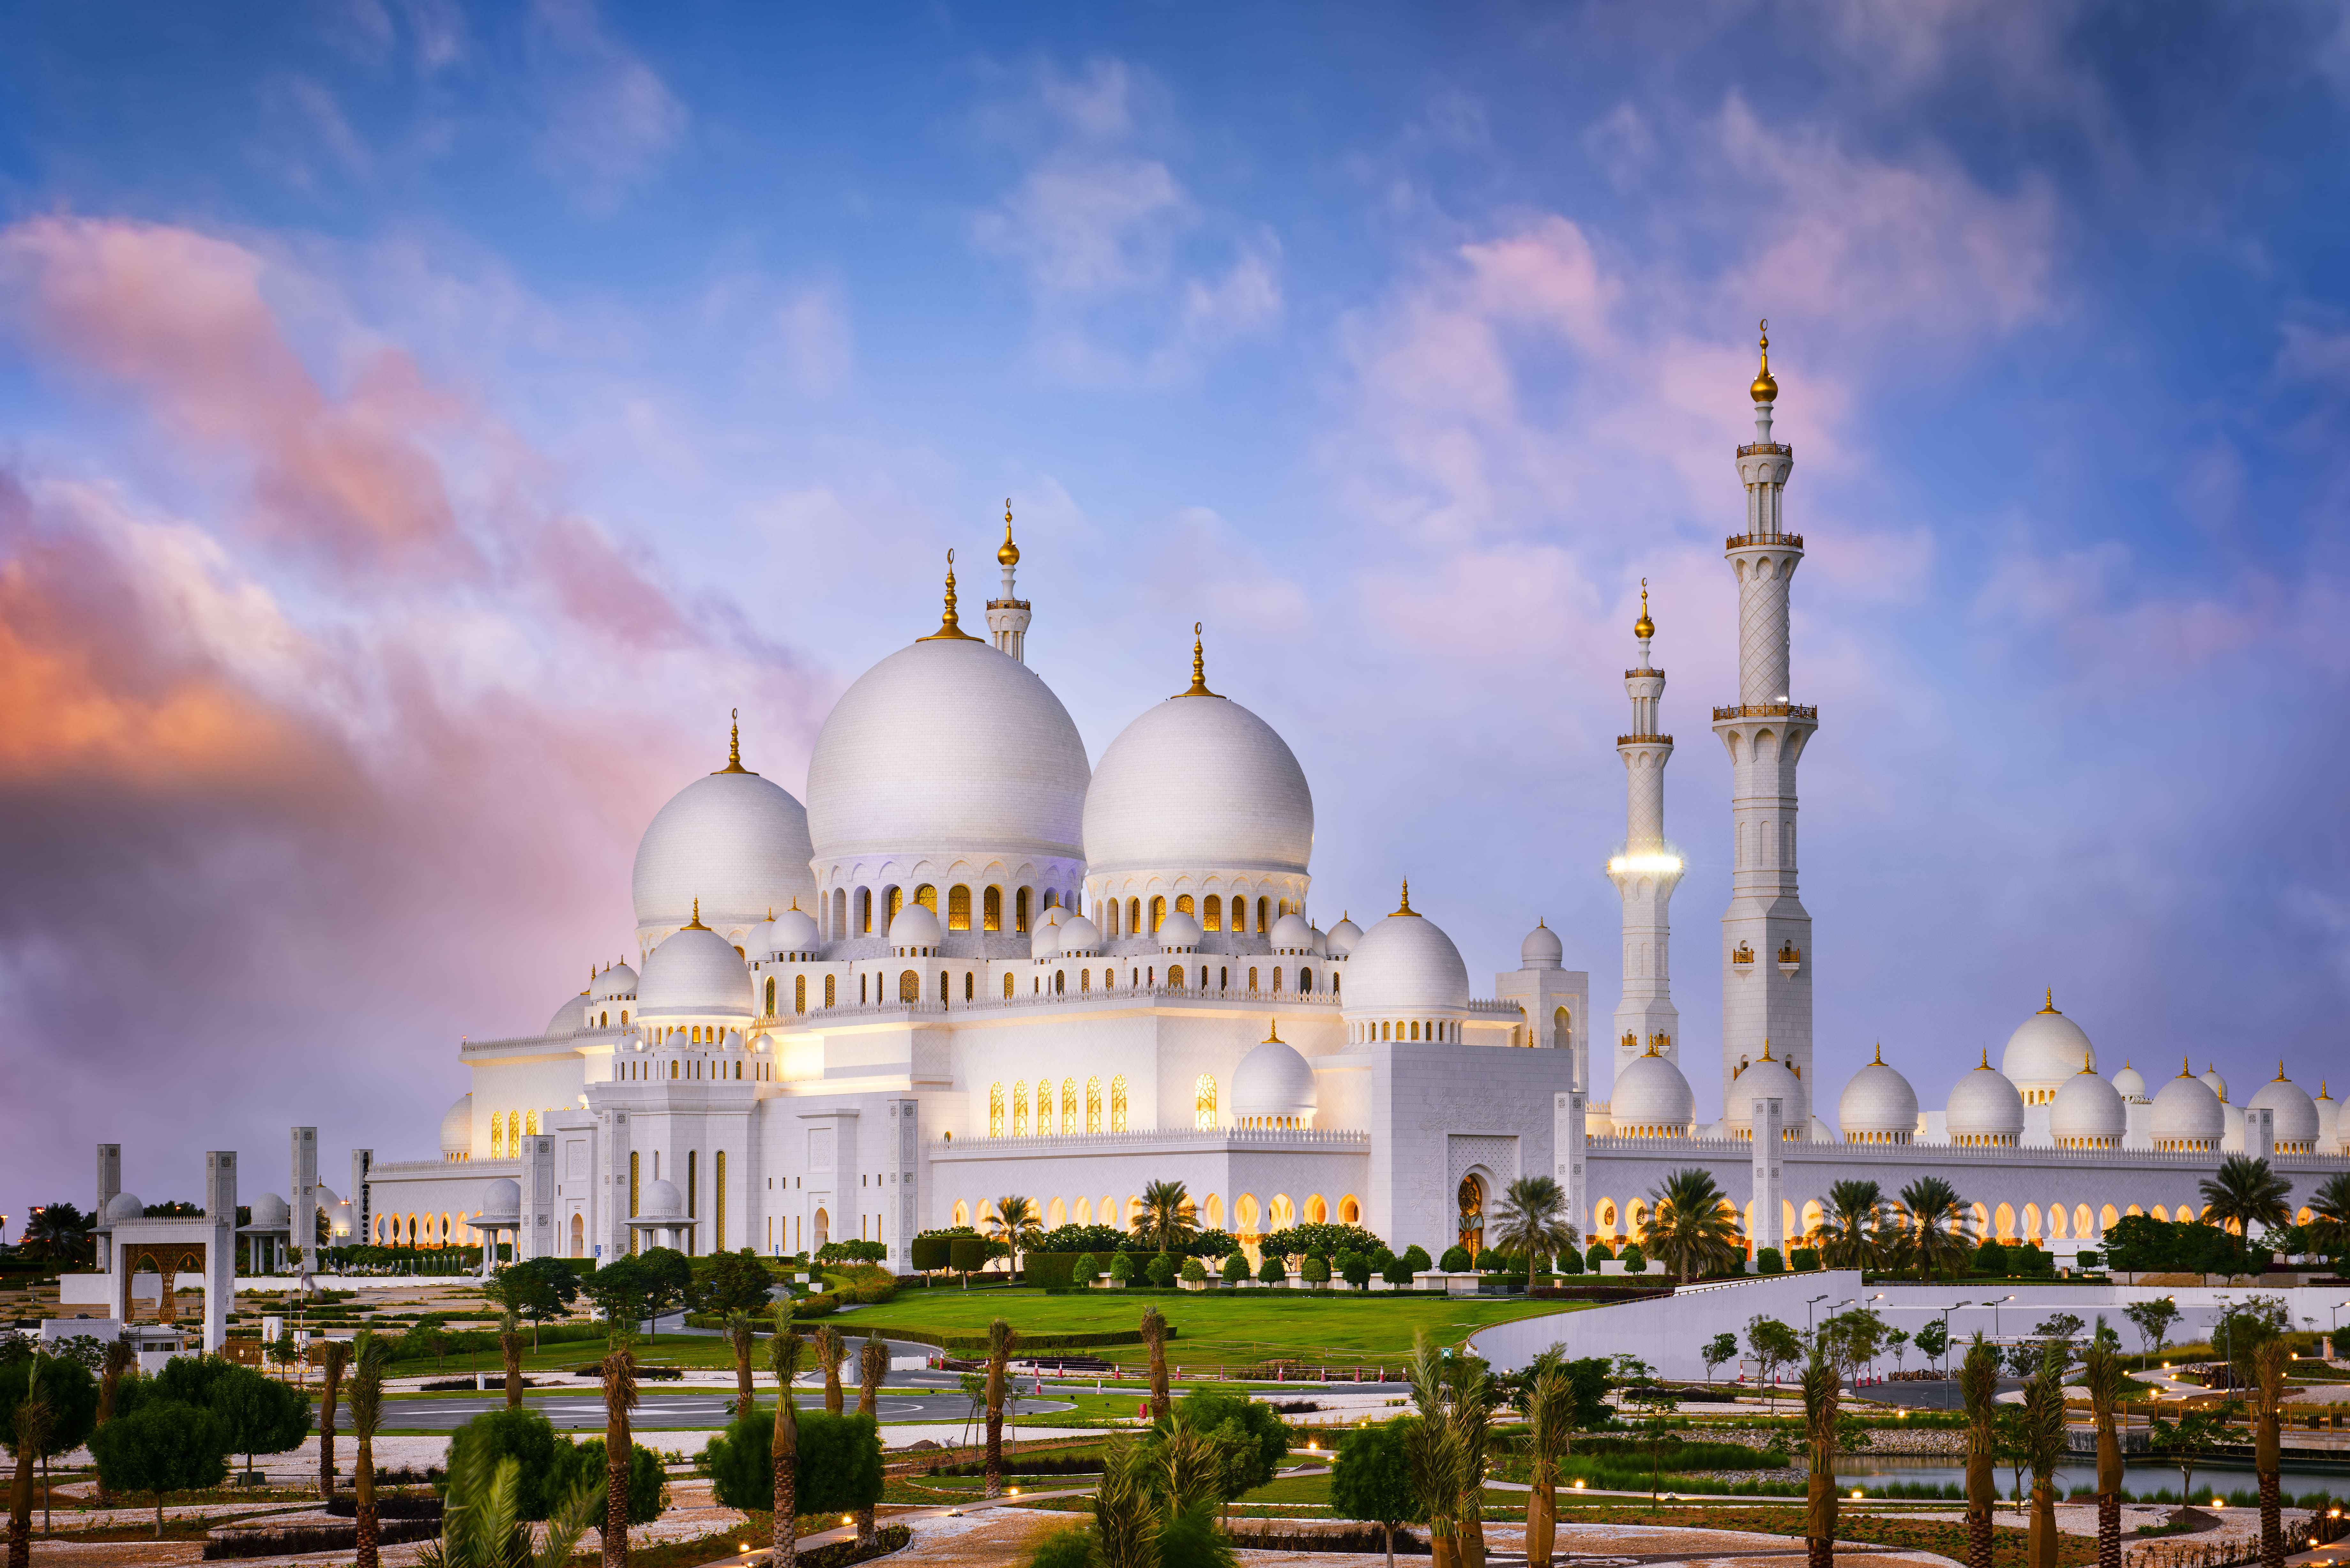 Abu Dhabi Sheikh Zayed Grand Mosque Tour In Half Day From Dubai - Travel Fube